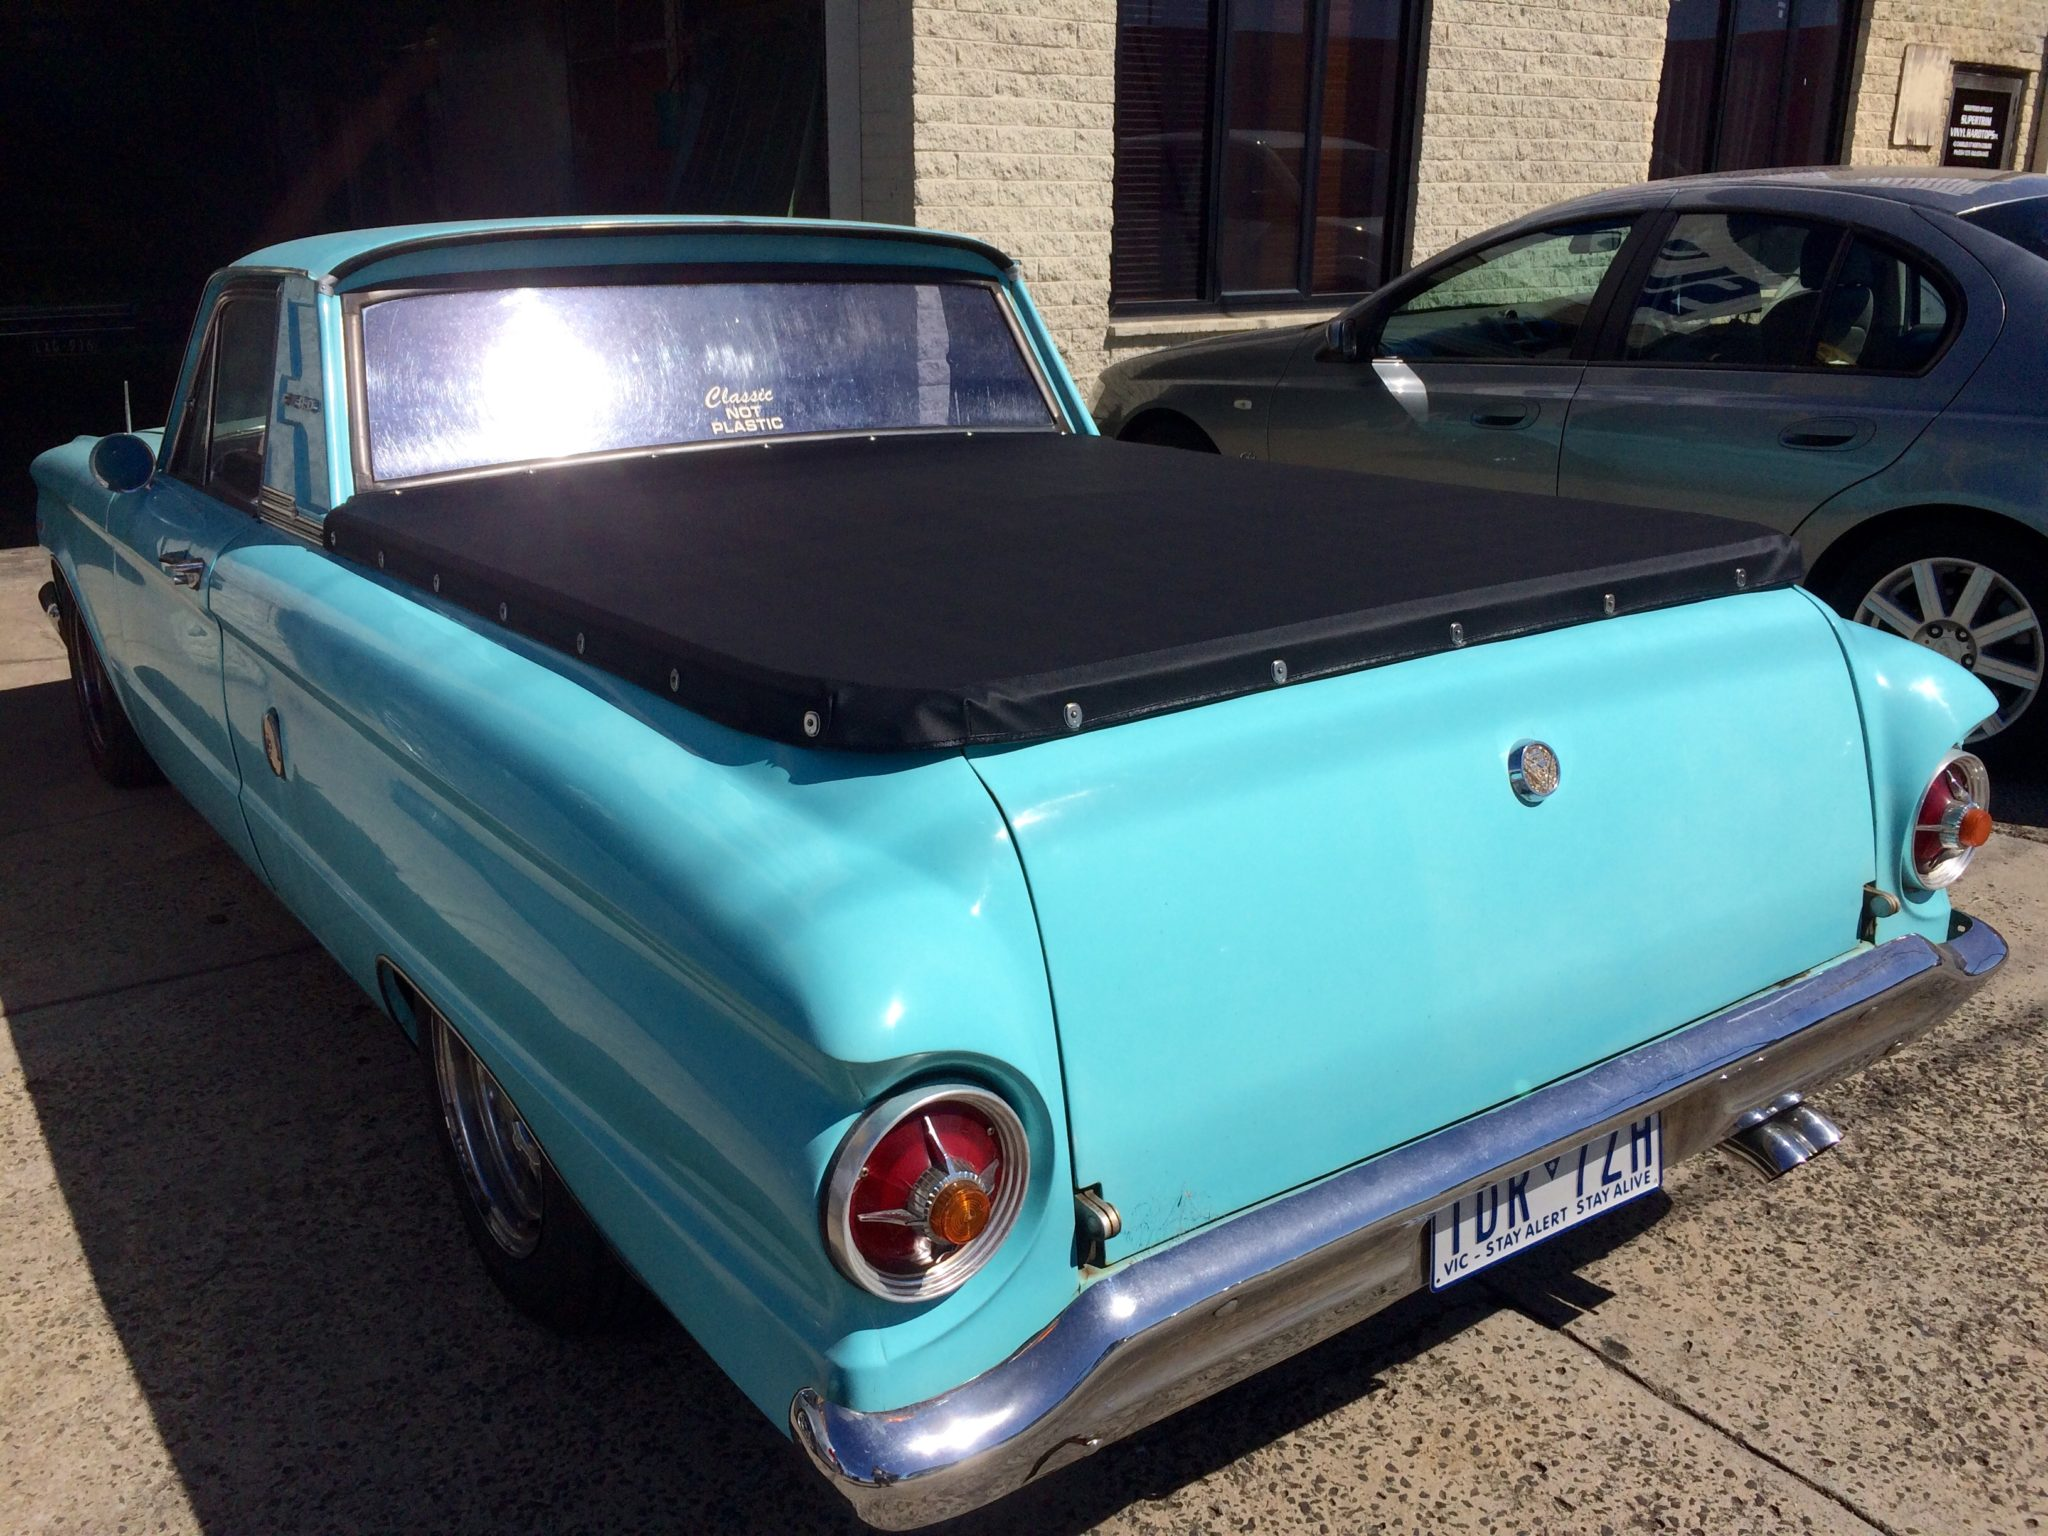 Ford Xp Ute Tonneau Cover together with File Ford Falcon XM Wagon further Old Mustang Wallpaper likewise File Ford XM Falcon Utility moreover Photos. on ford falcon xp